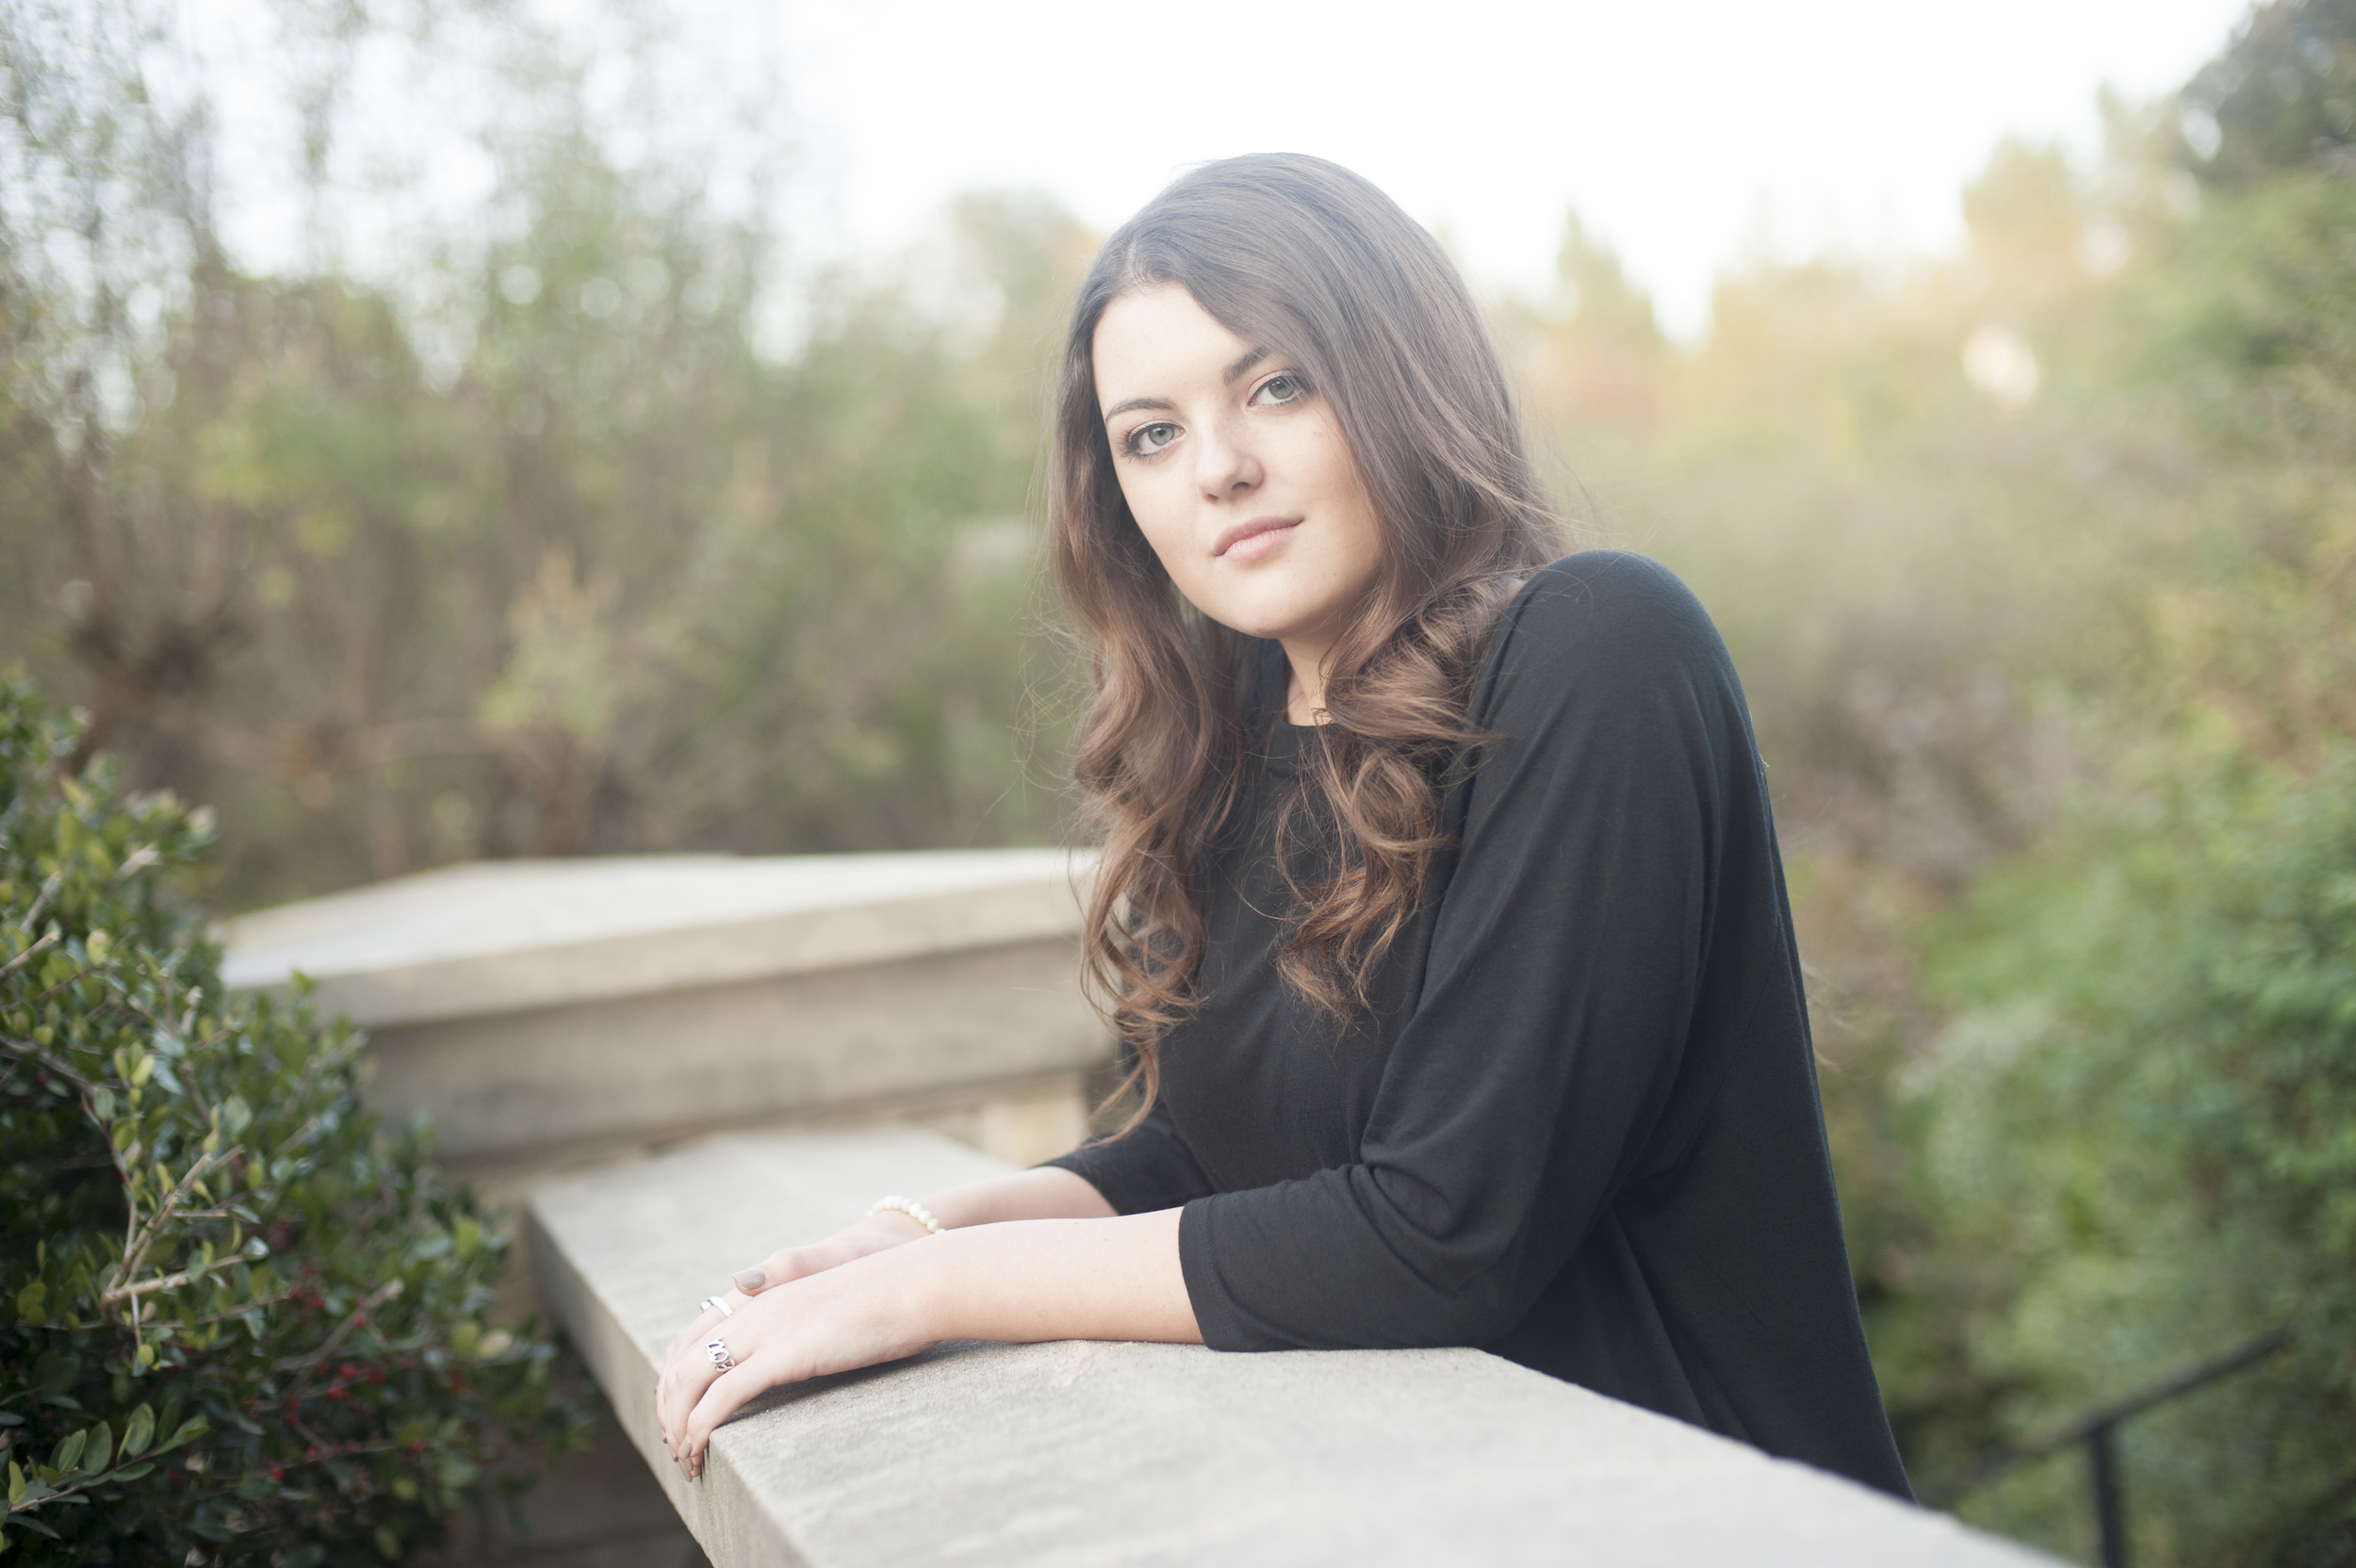 Senior Portraits at Dallas Arboretum